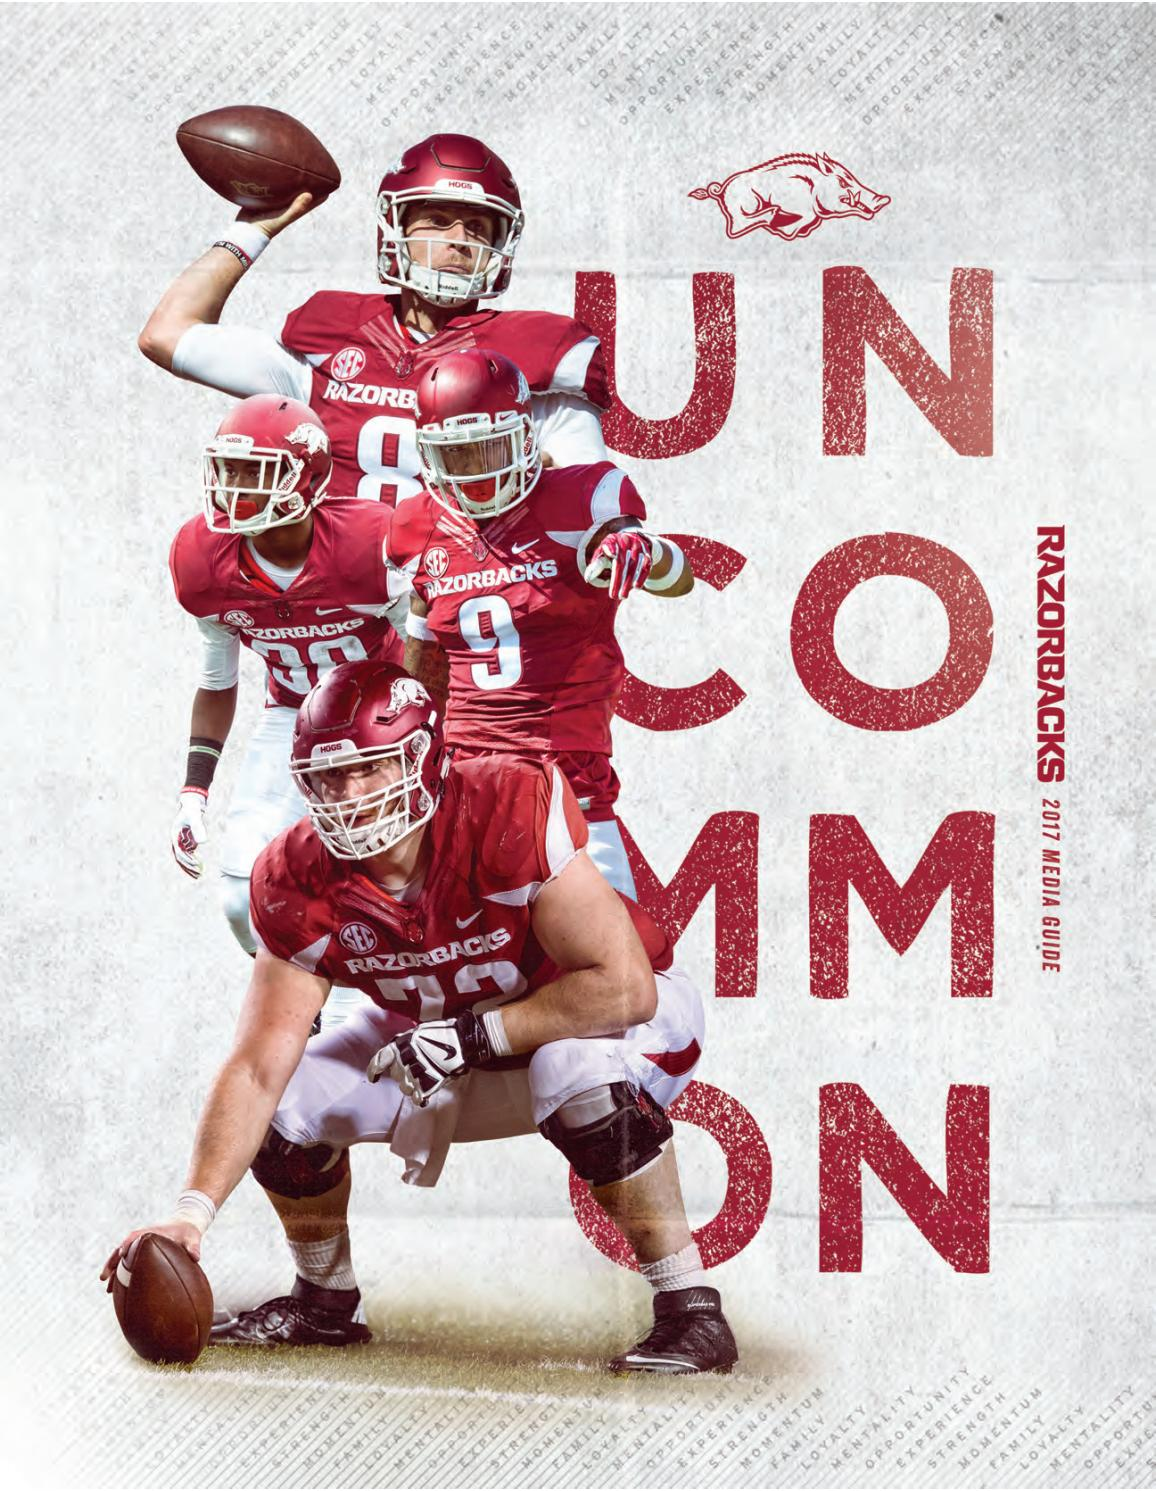 e6acc081c 2017 Univ of Arkansas Football Media Guide by University of Arkansas  Athletics - issuu